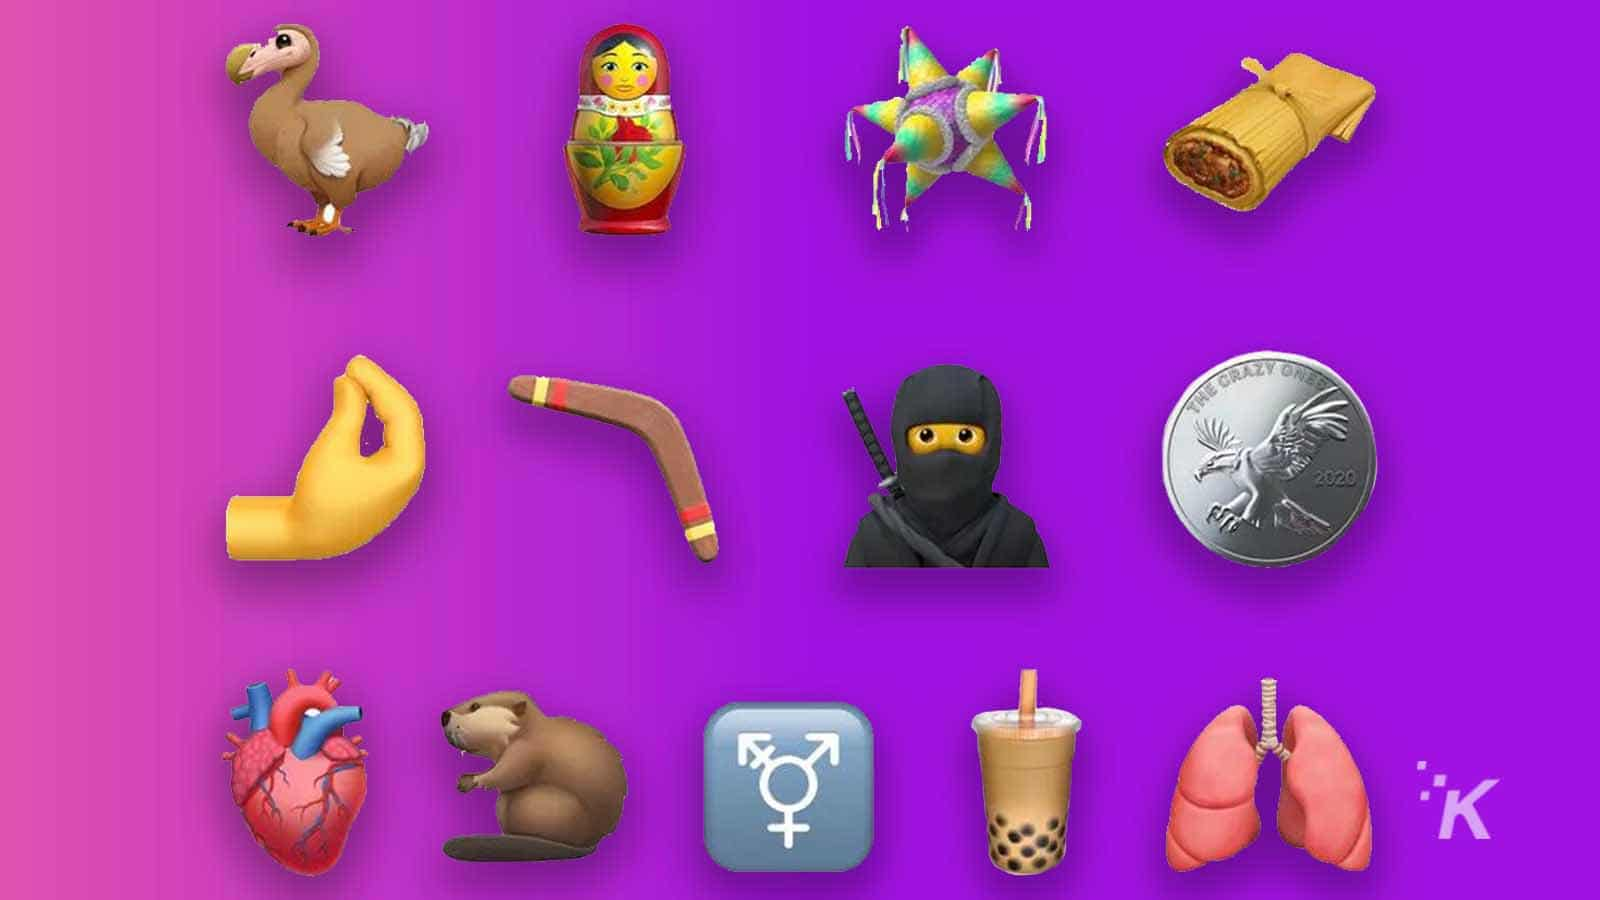 emoji 13 coming to android and ios